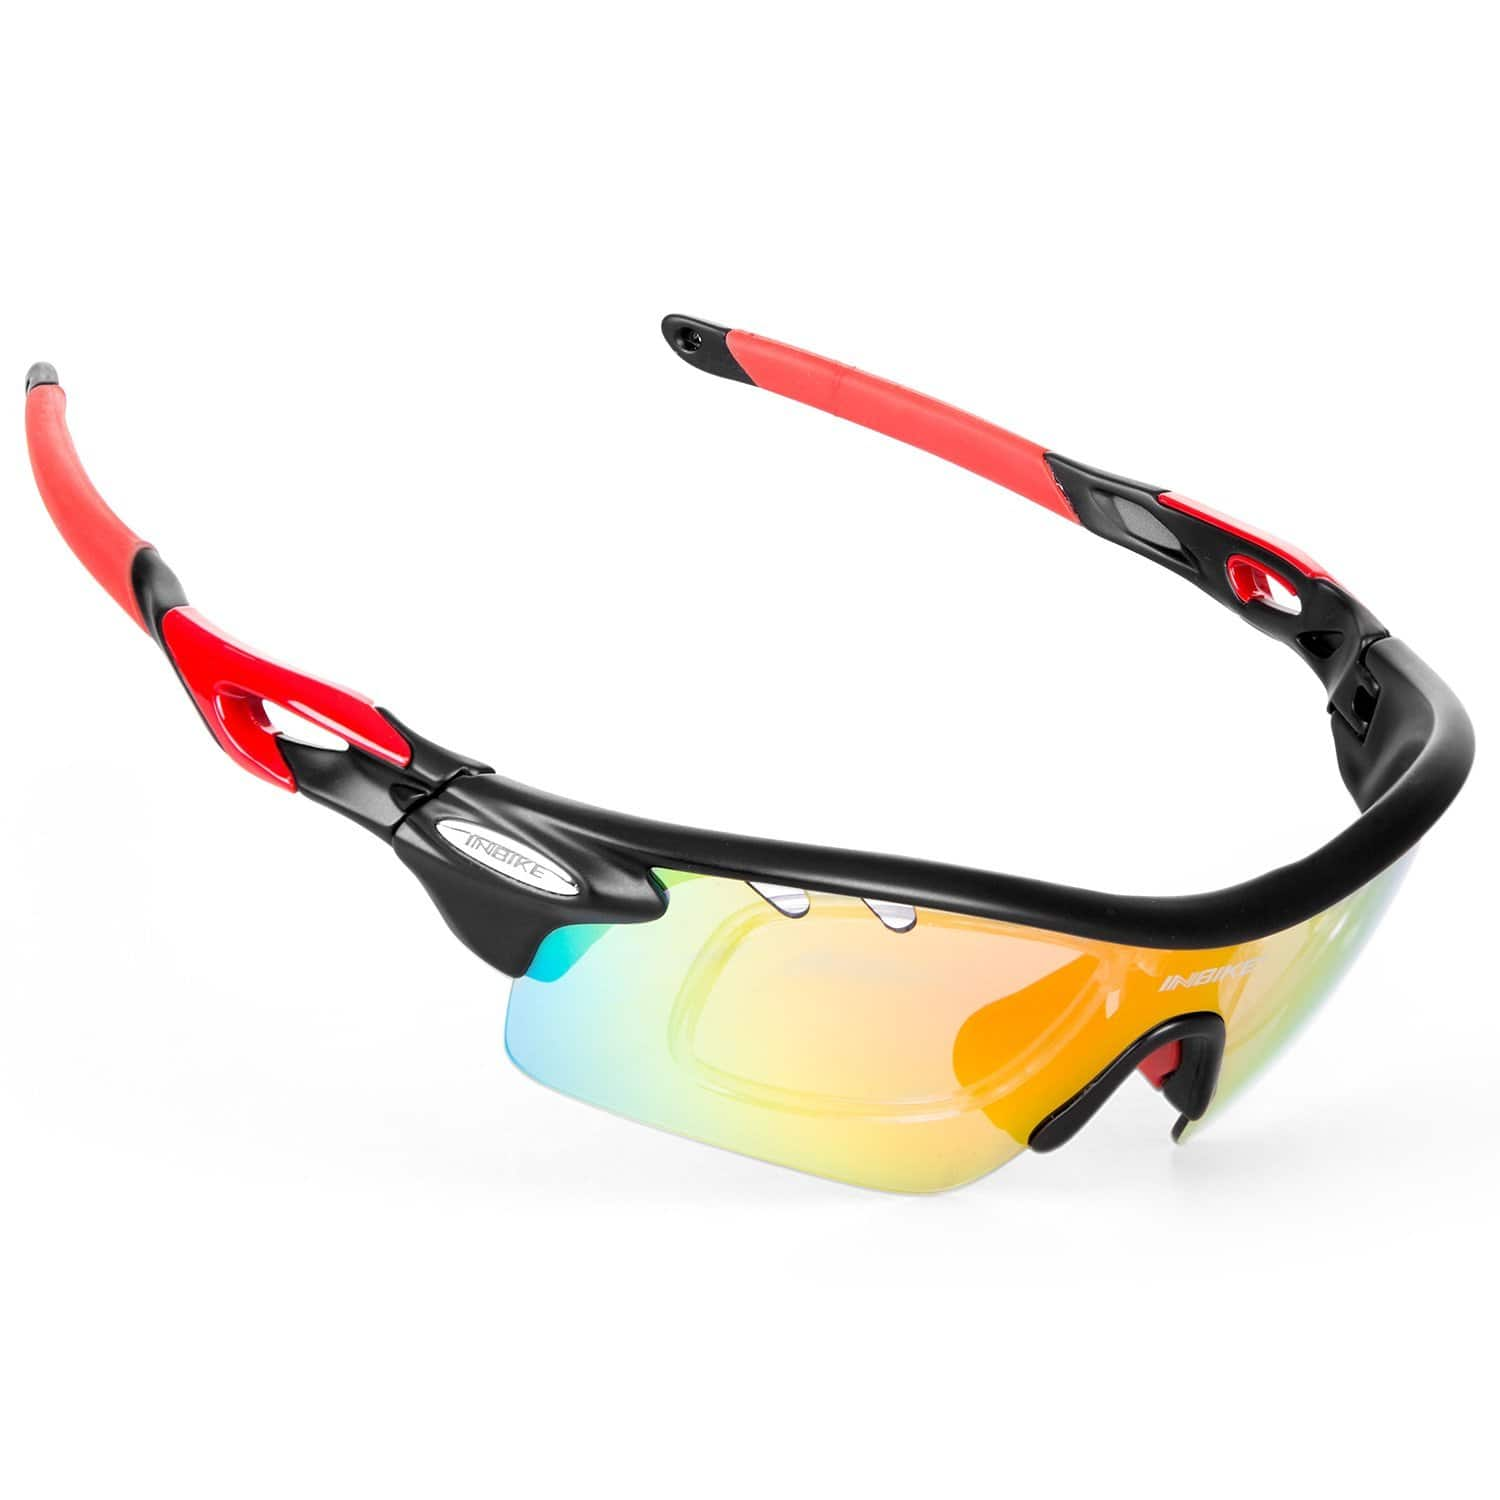 INBIKE Polarized Sports Sunglasses with 5 Interchangeable Lenses - $9.99 (F/S Prime)